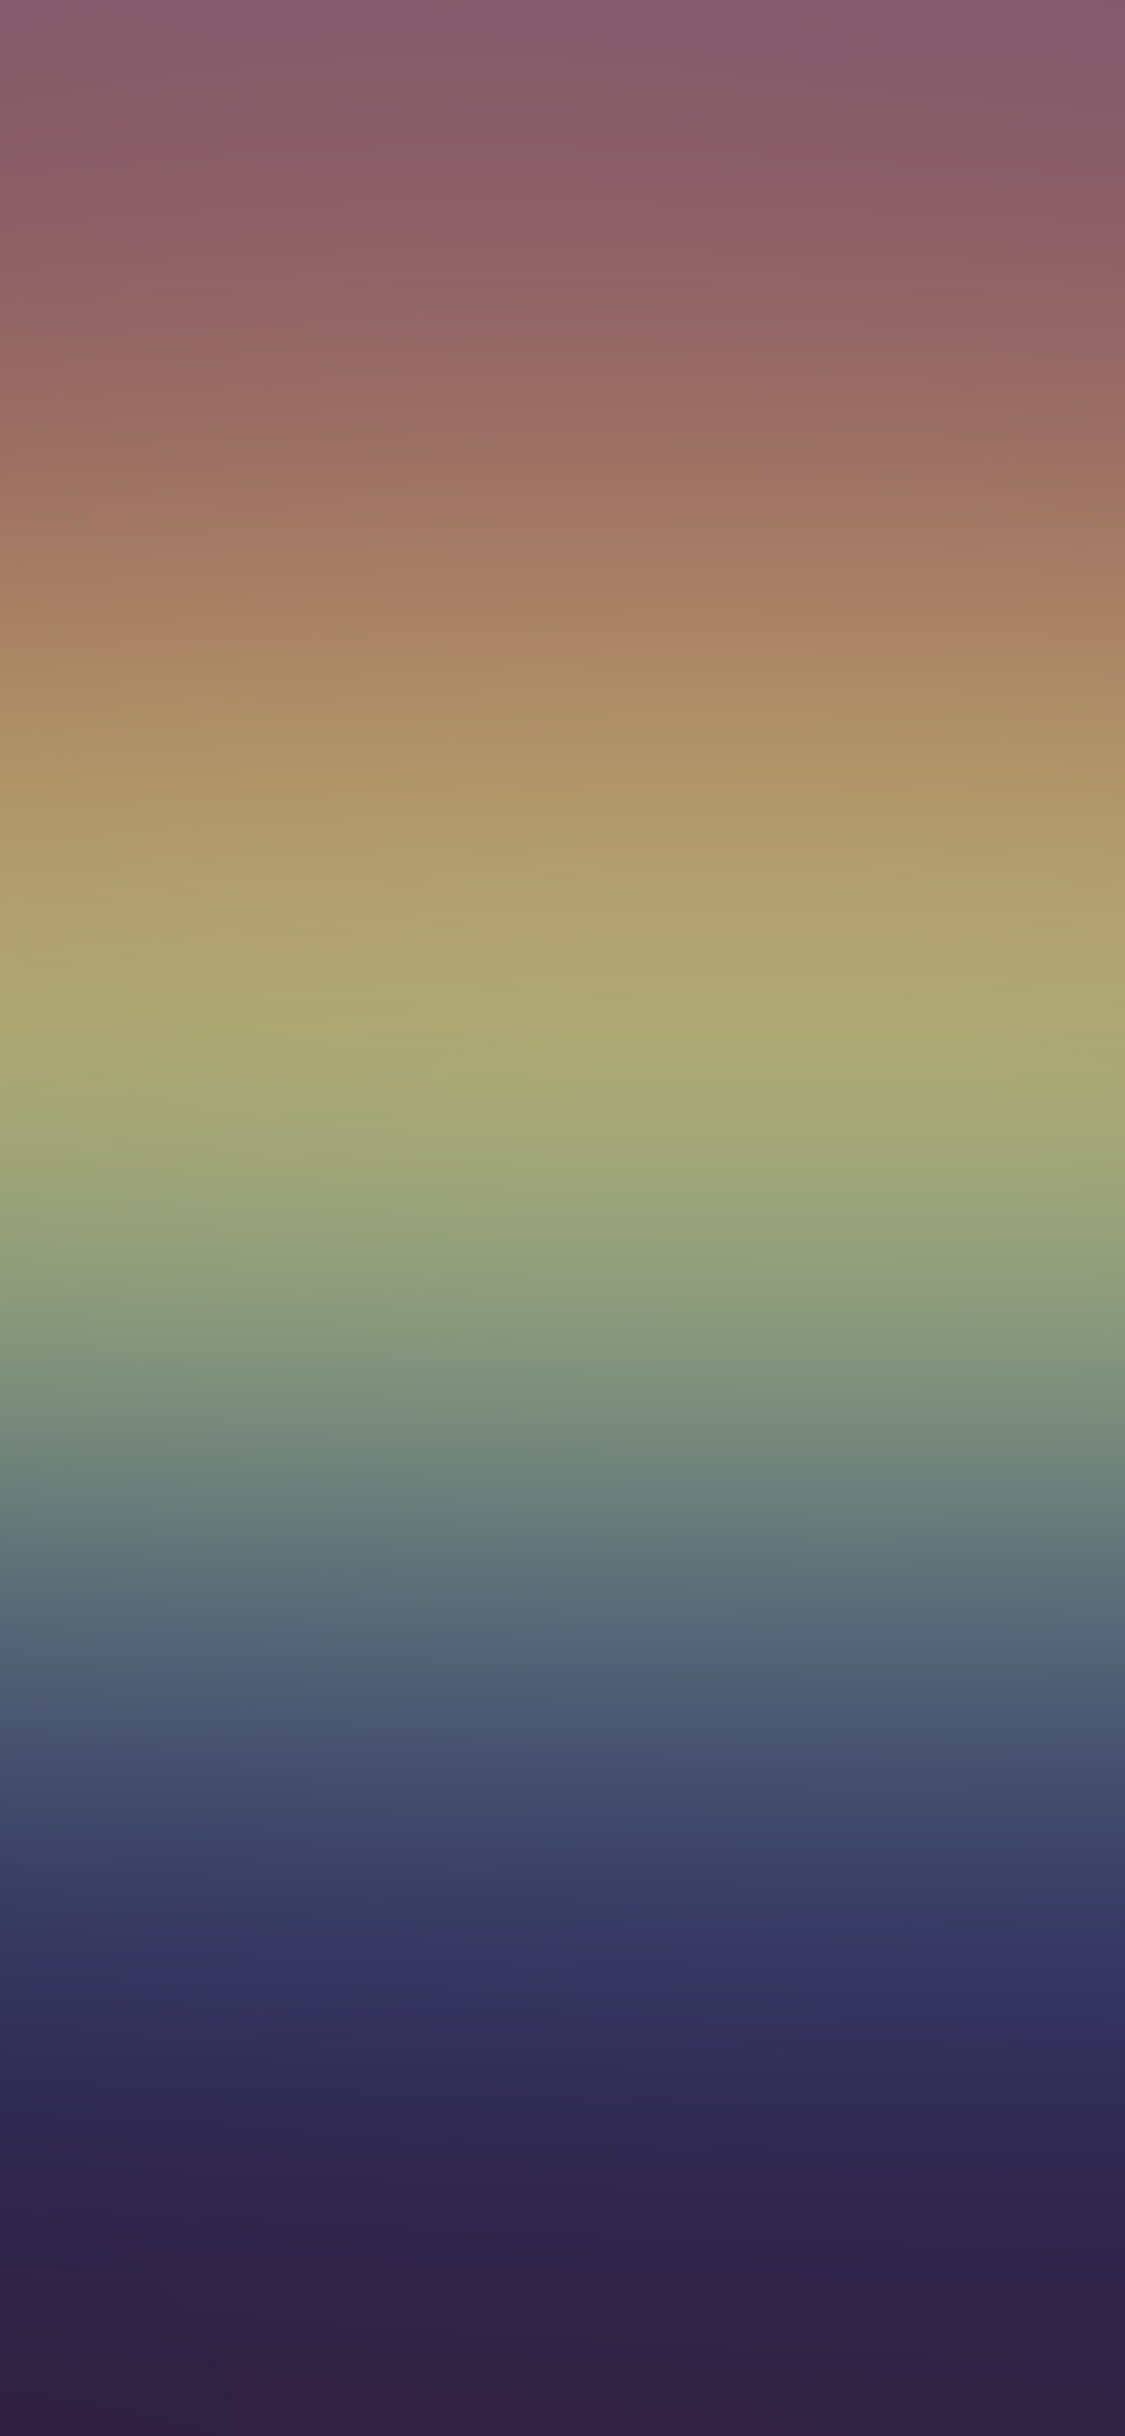 iPhonexpapers.com-Apple-iPhone-wallpaper-sm96-rainbow-worldcup-blur-gradation